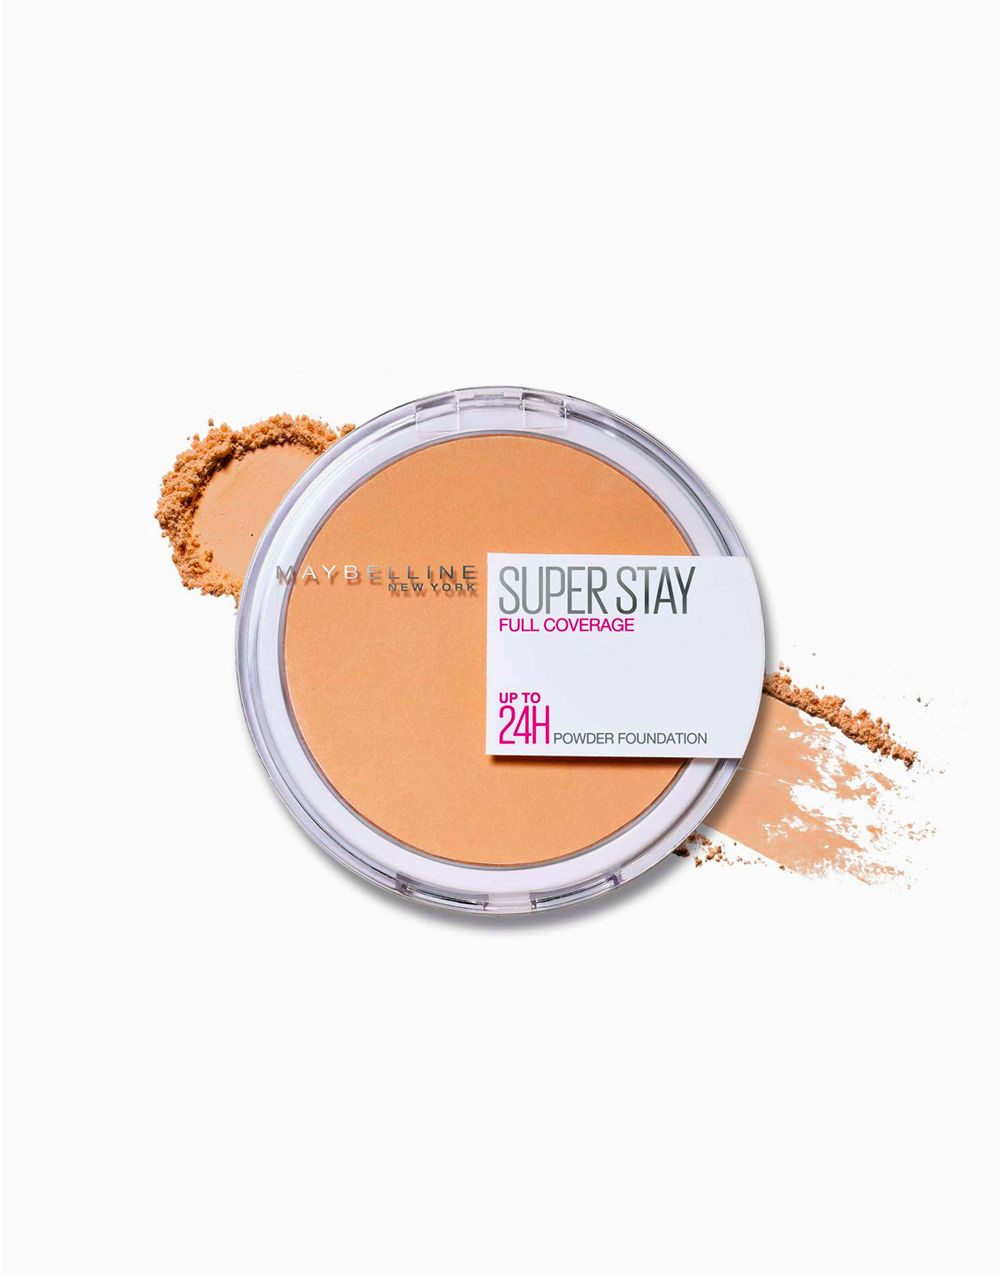 SuperStay 16HR Full Coverage Powder Foundation by Maybelline | 220 Natural Beige